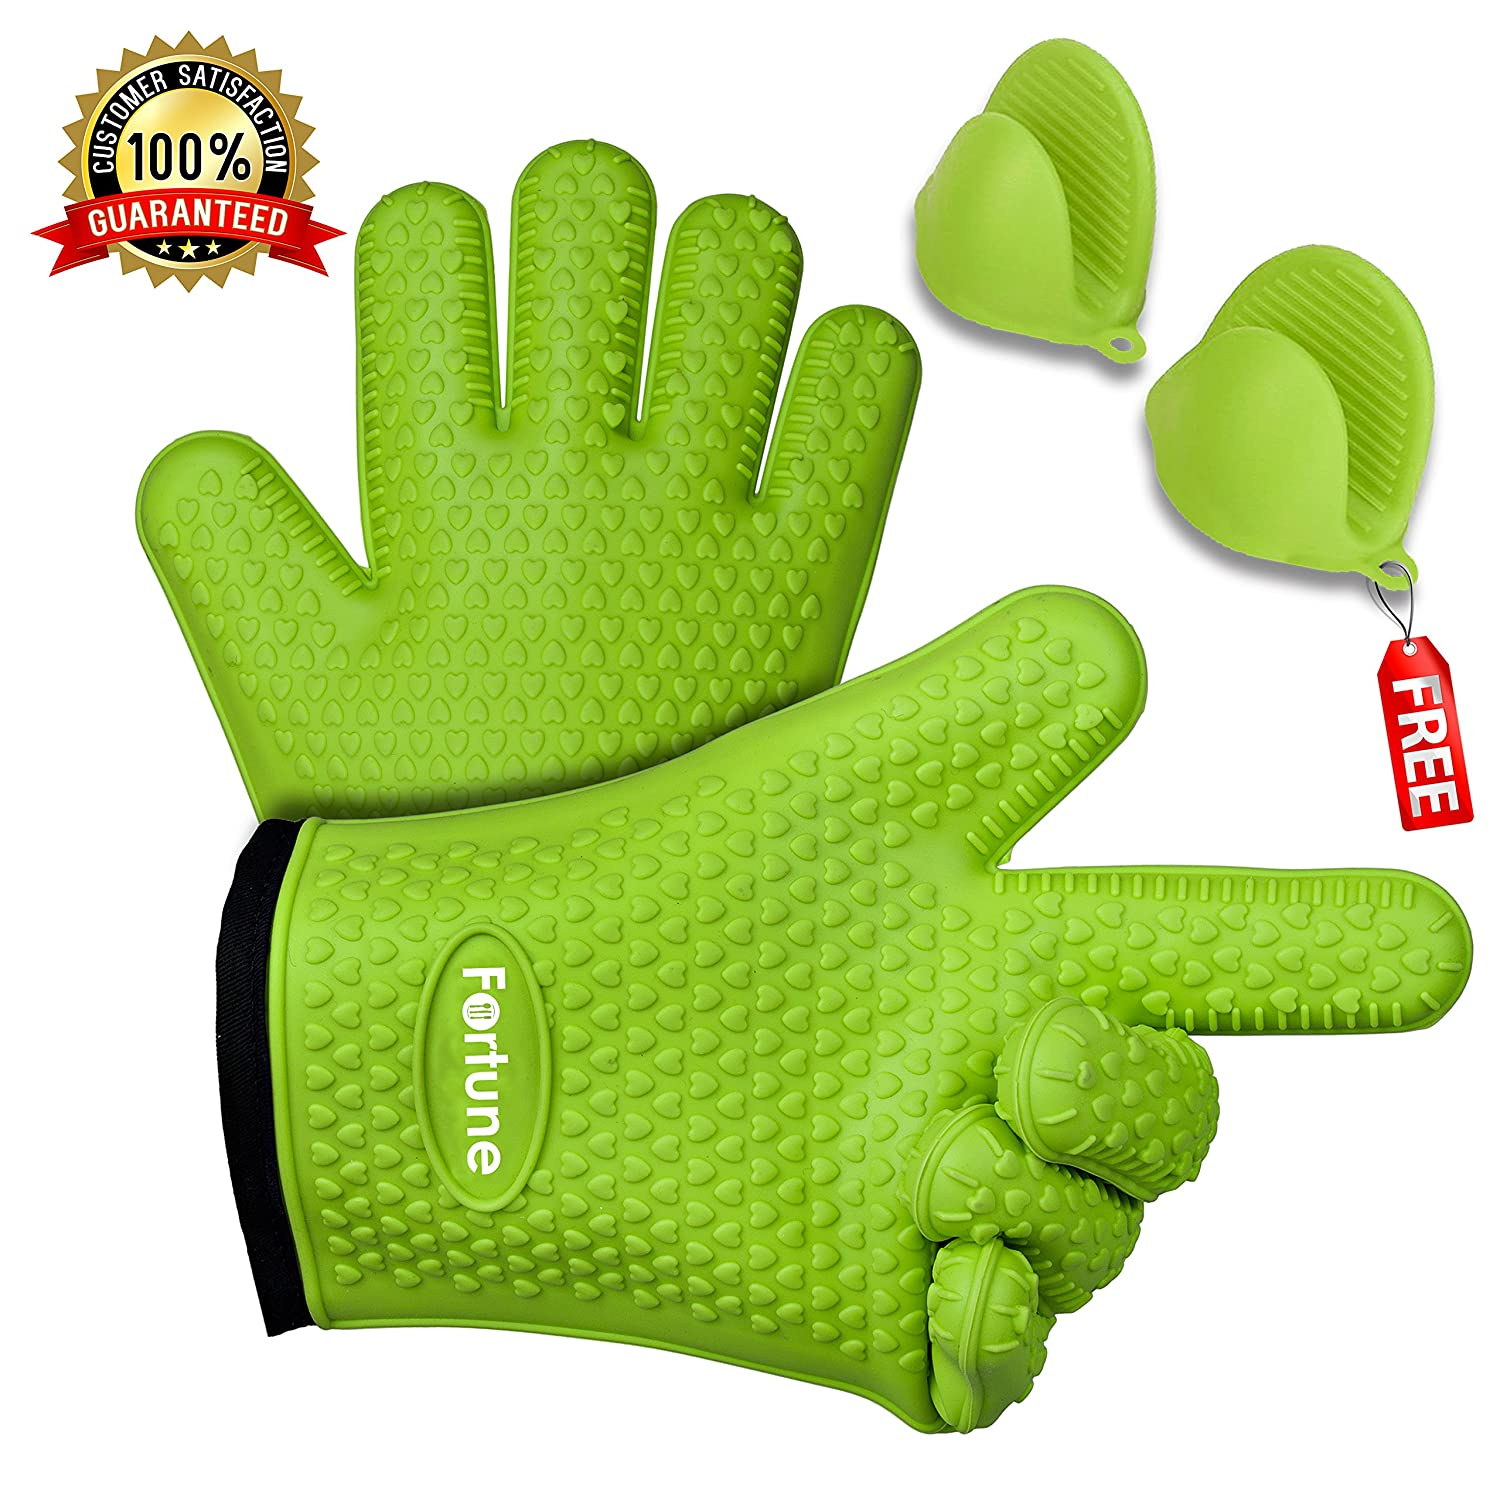 BBQグリル用手袋 – Best Heat Resistant Oven Mitts For Cooking、安全にBaking & Boiling – HoldsホットPots and Pans – 滑り止め鍋掴み内部コットンLayer – Includes Miniオーブンミット グリーン B07528HVWG  グリーン